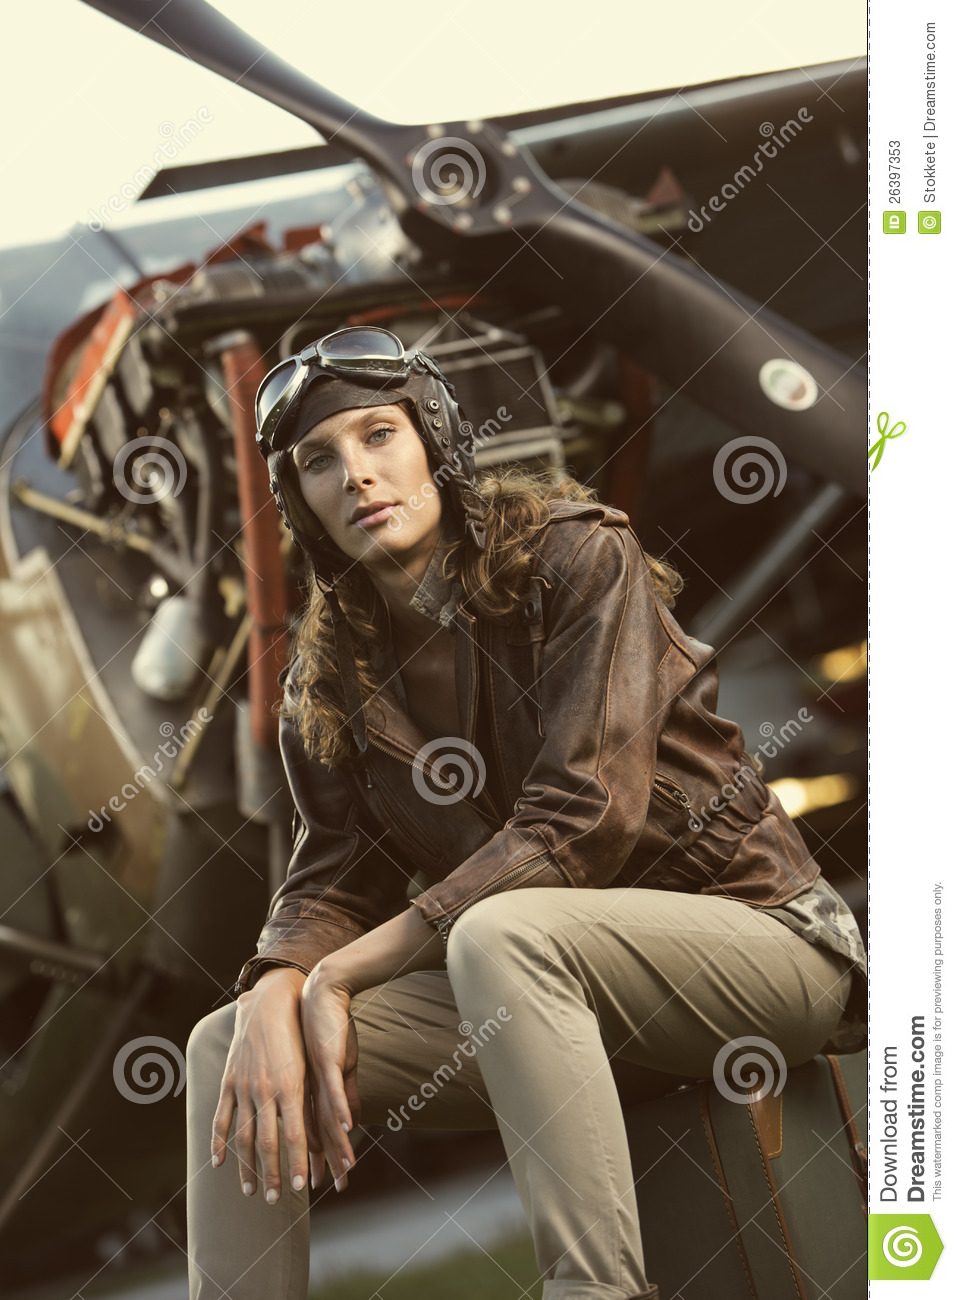 Beautiful Woman Aviator: Vintage Photo Stock Photos - Image: 26397353